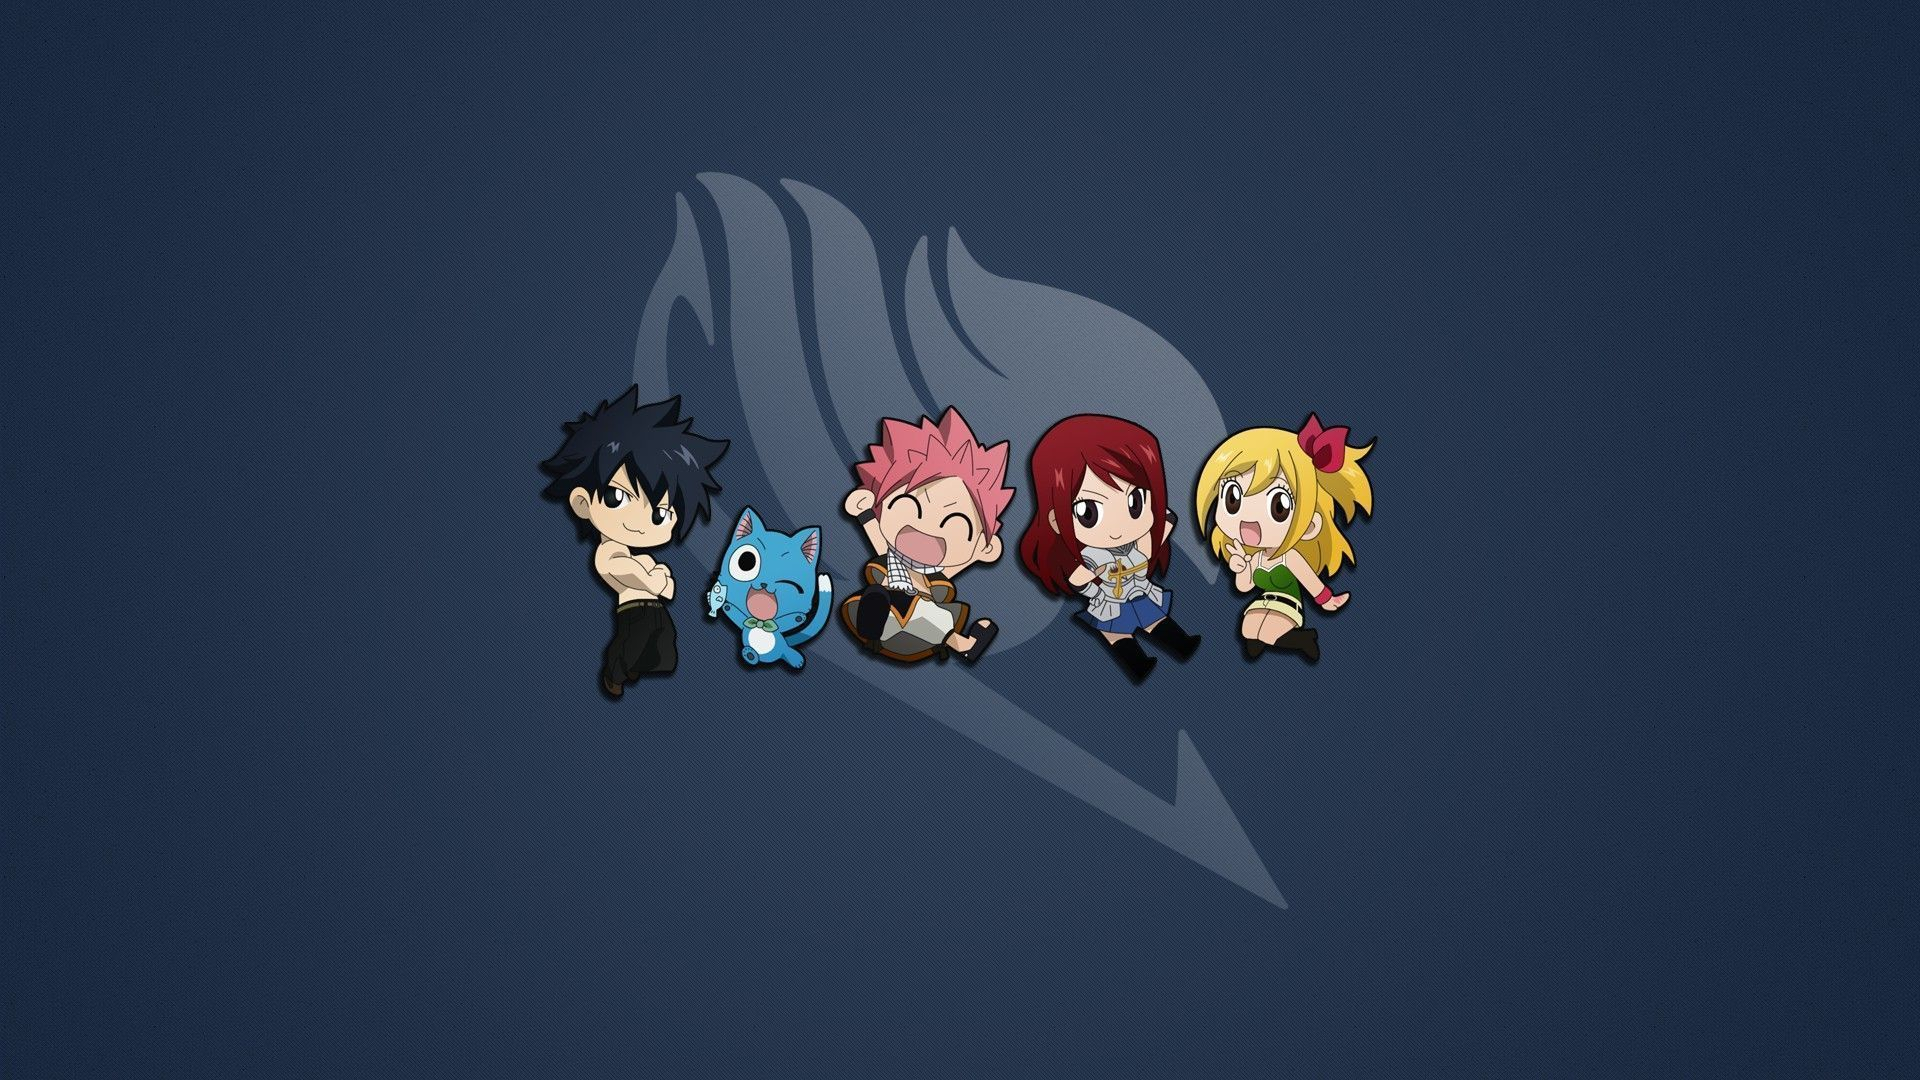 FAIRY TAIL Wallpaper Zerochan Anime Image Board